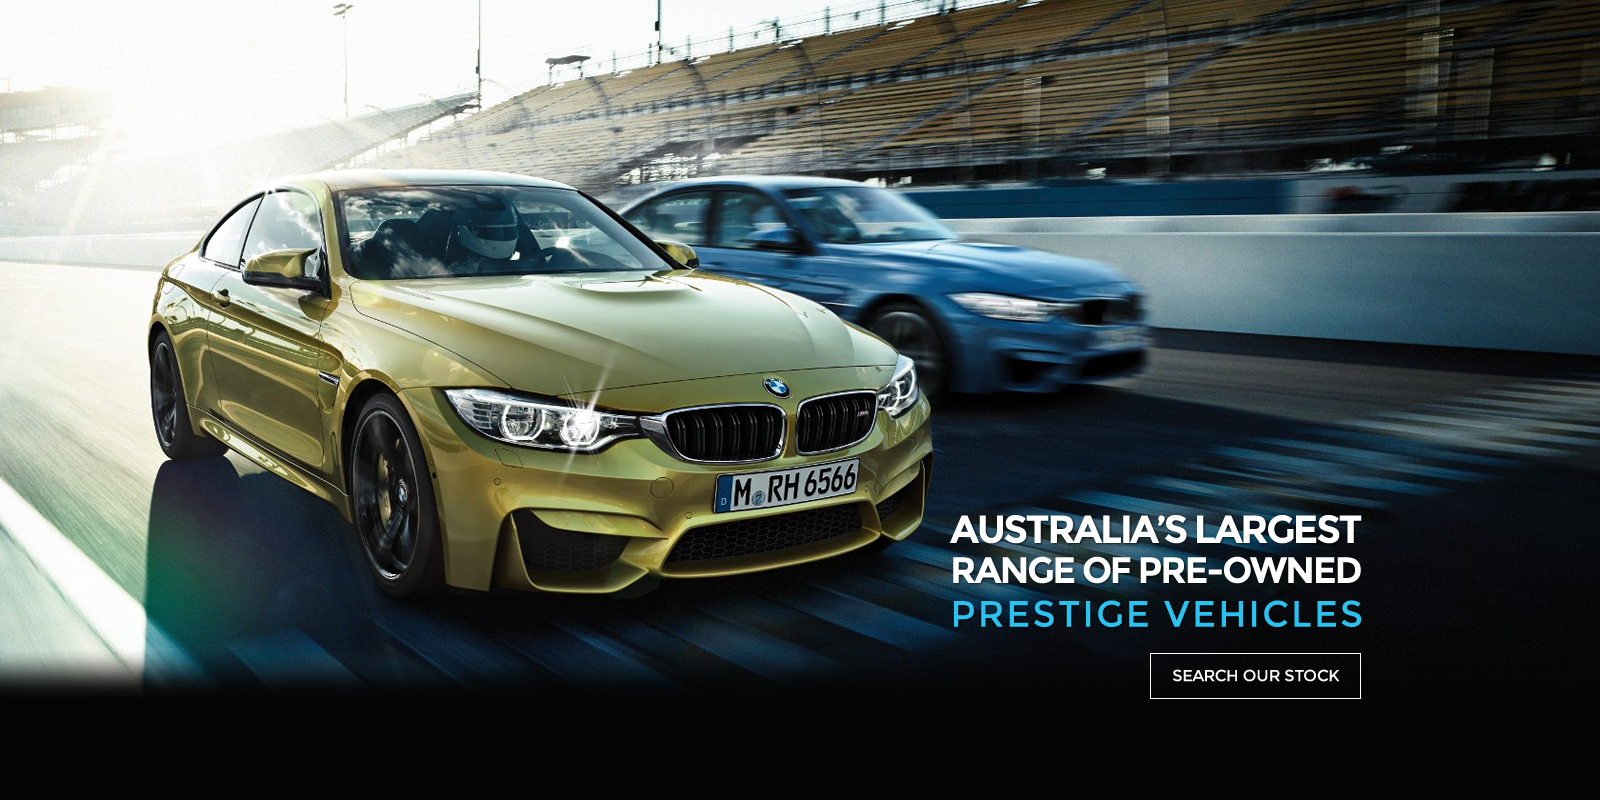 luxury car auctions melbourne  Used Dealer Sydney - Prestige Auto Traders